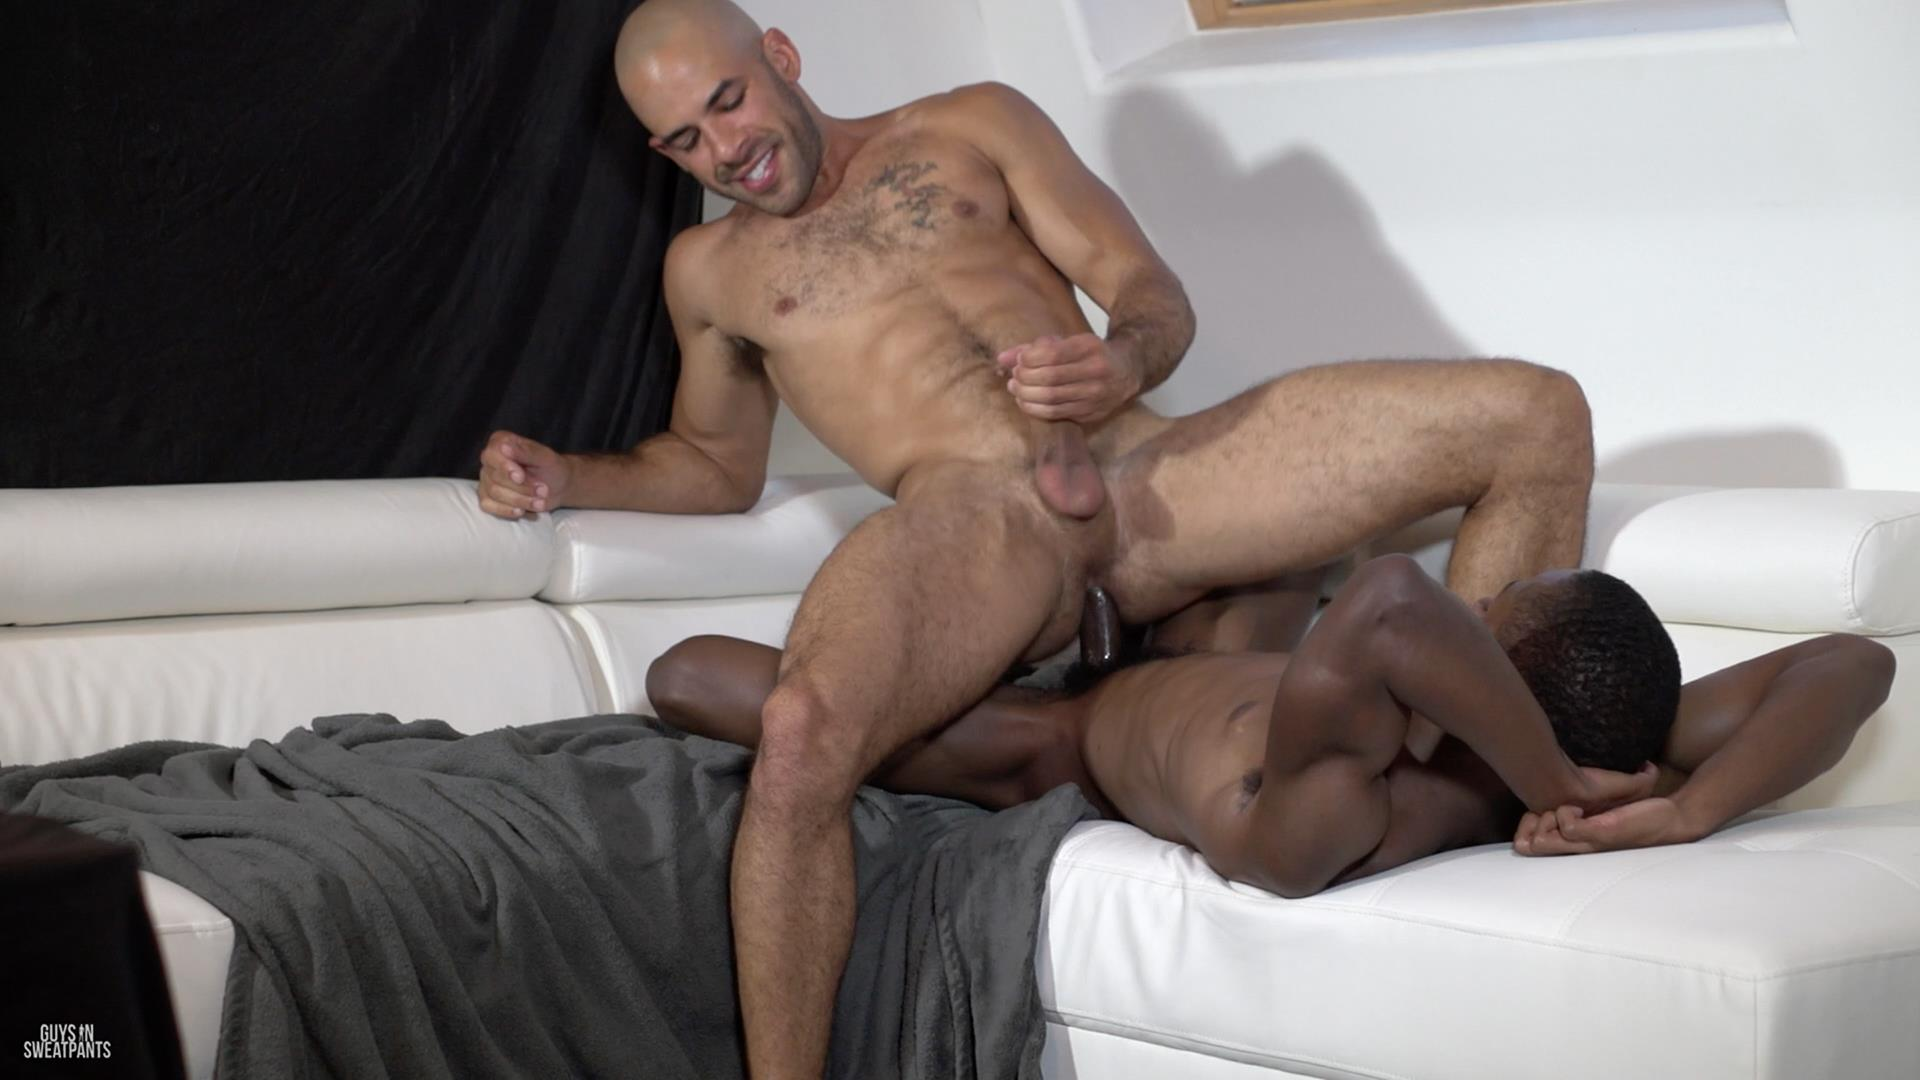 Guys in Sweatpants Austin Wilde and Liam Cyber Bareback Interracial Sex Amateur Gay Porn 10 Austin Wilde Takes A Big Black Bareback Cock Up The Ass